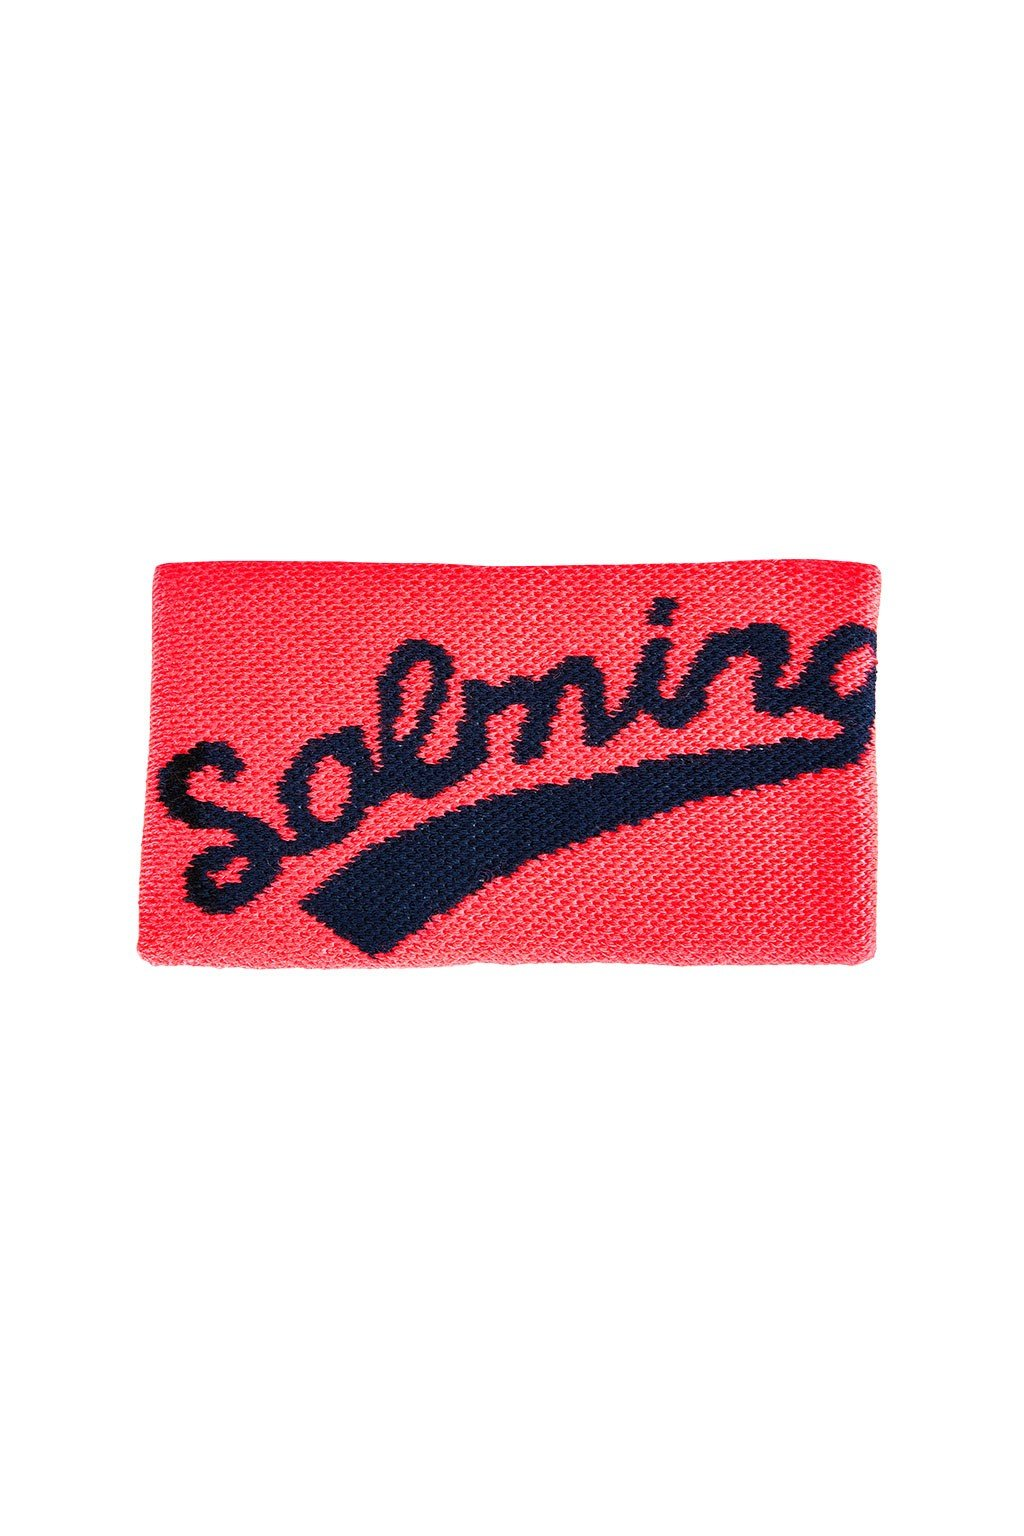 salming wristband long coral navy